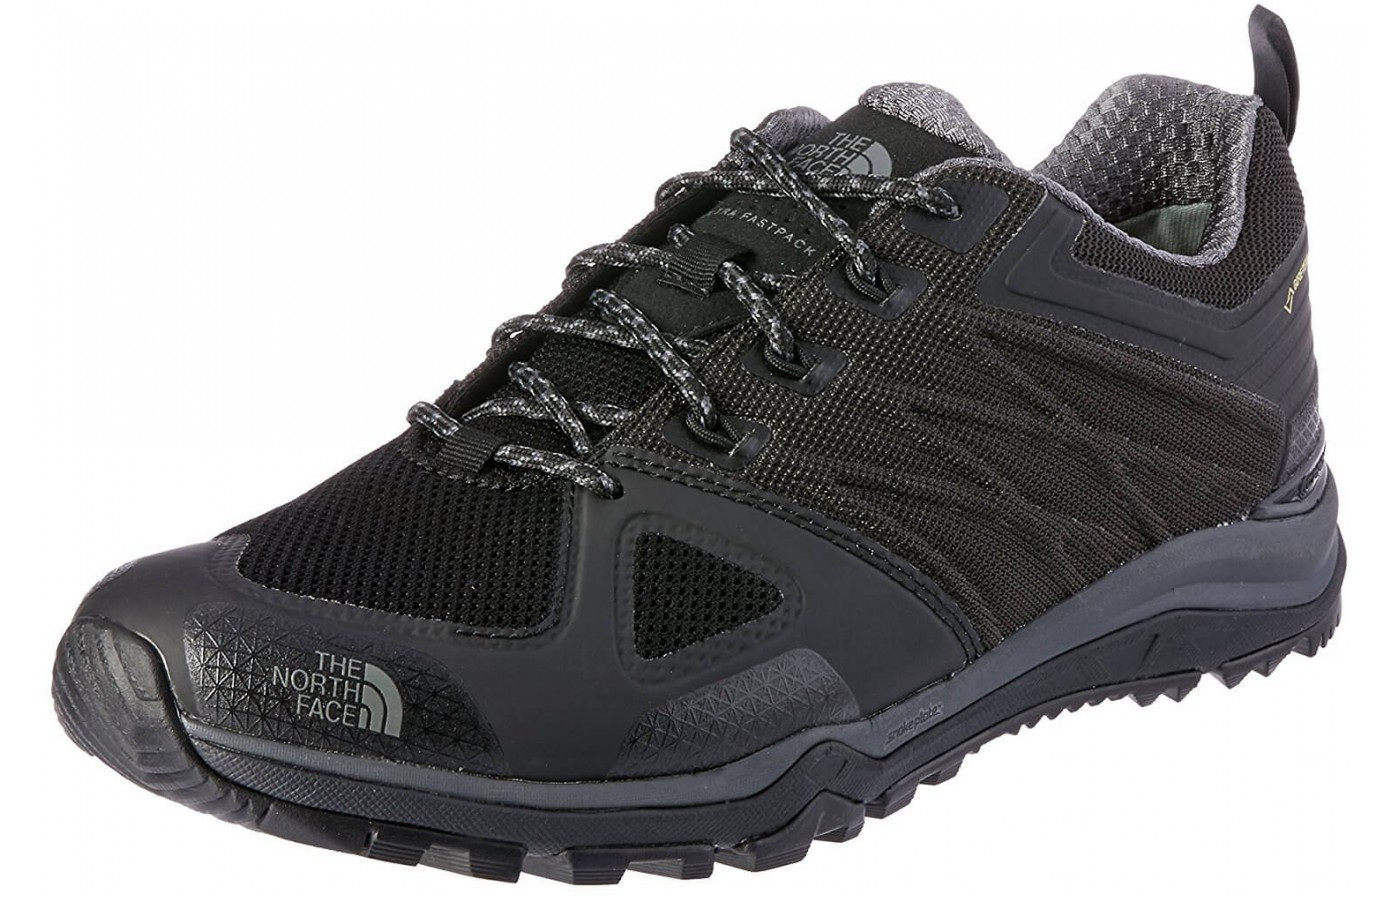 The The North Face Ultra Fastpack II GTX has a welded upper design for a lightweight supportive construction